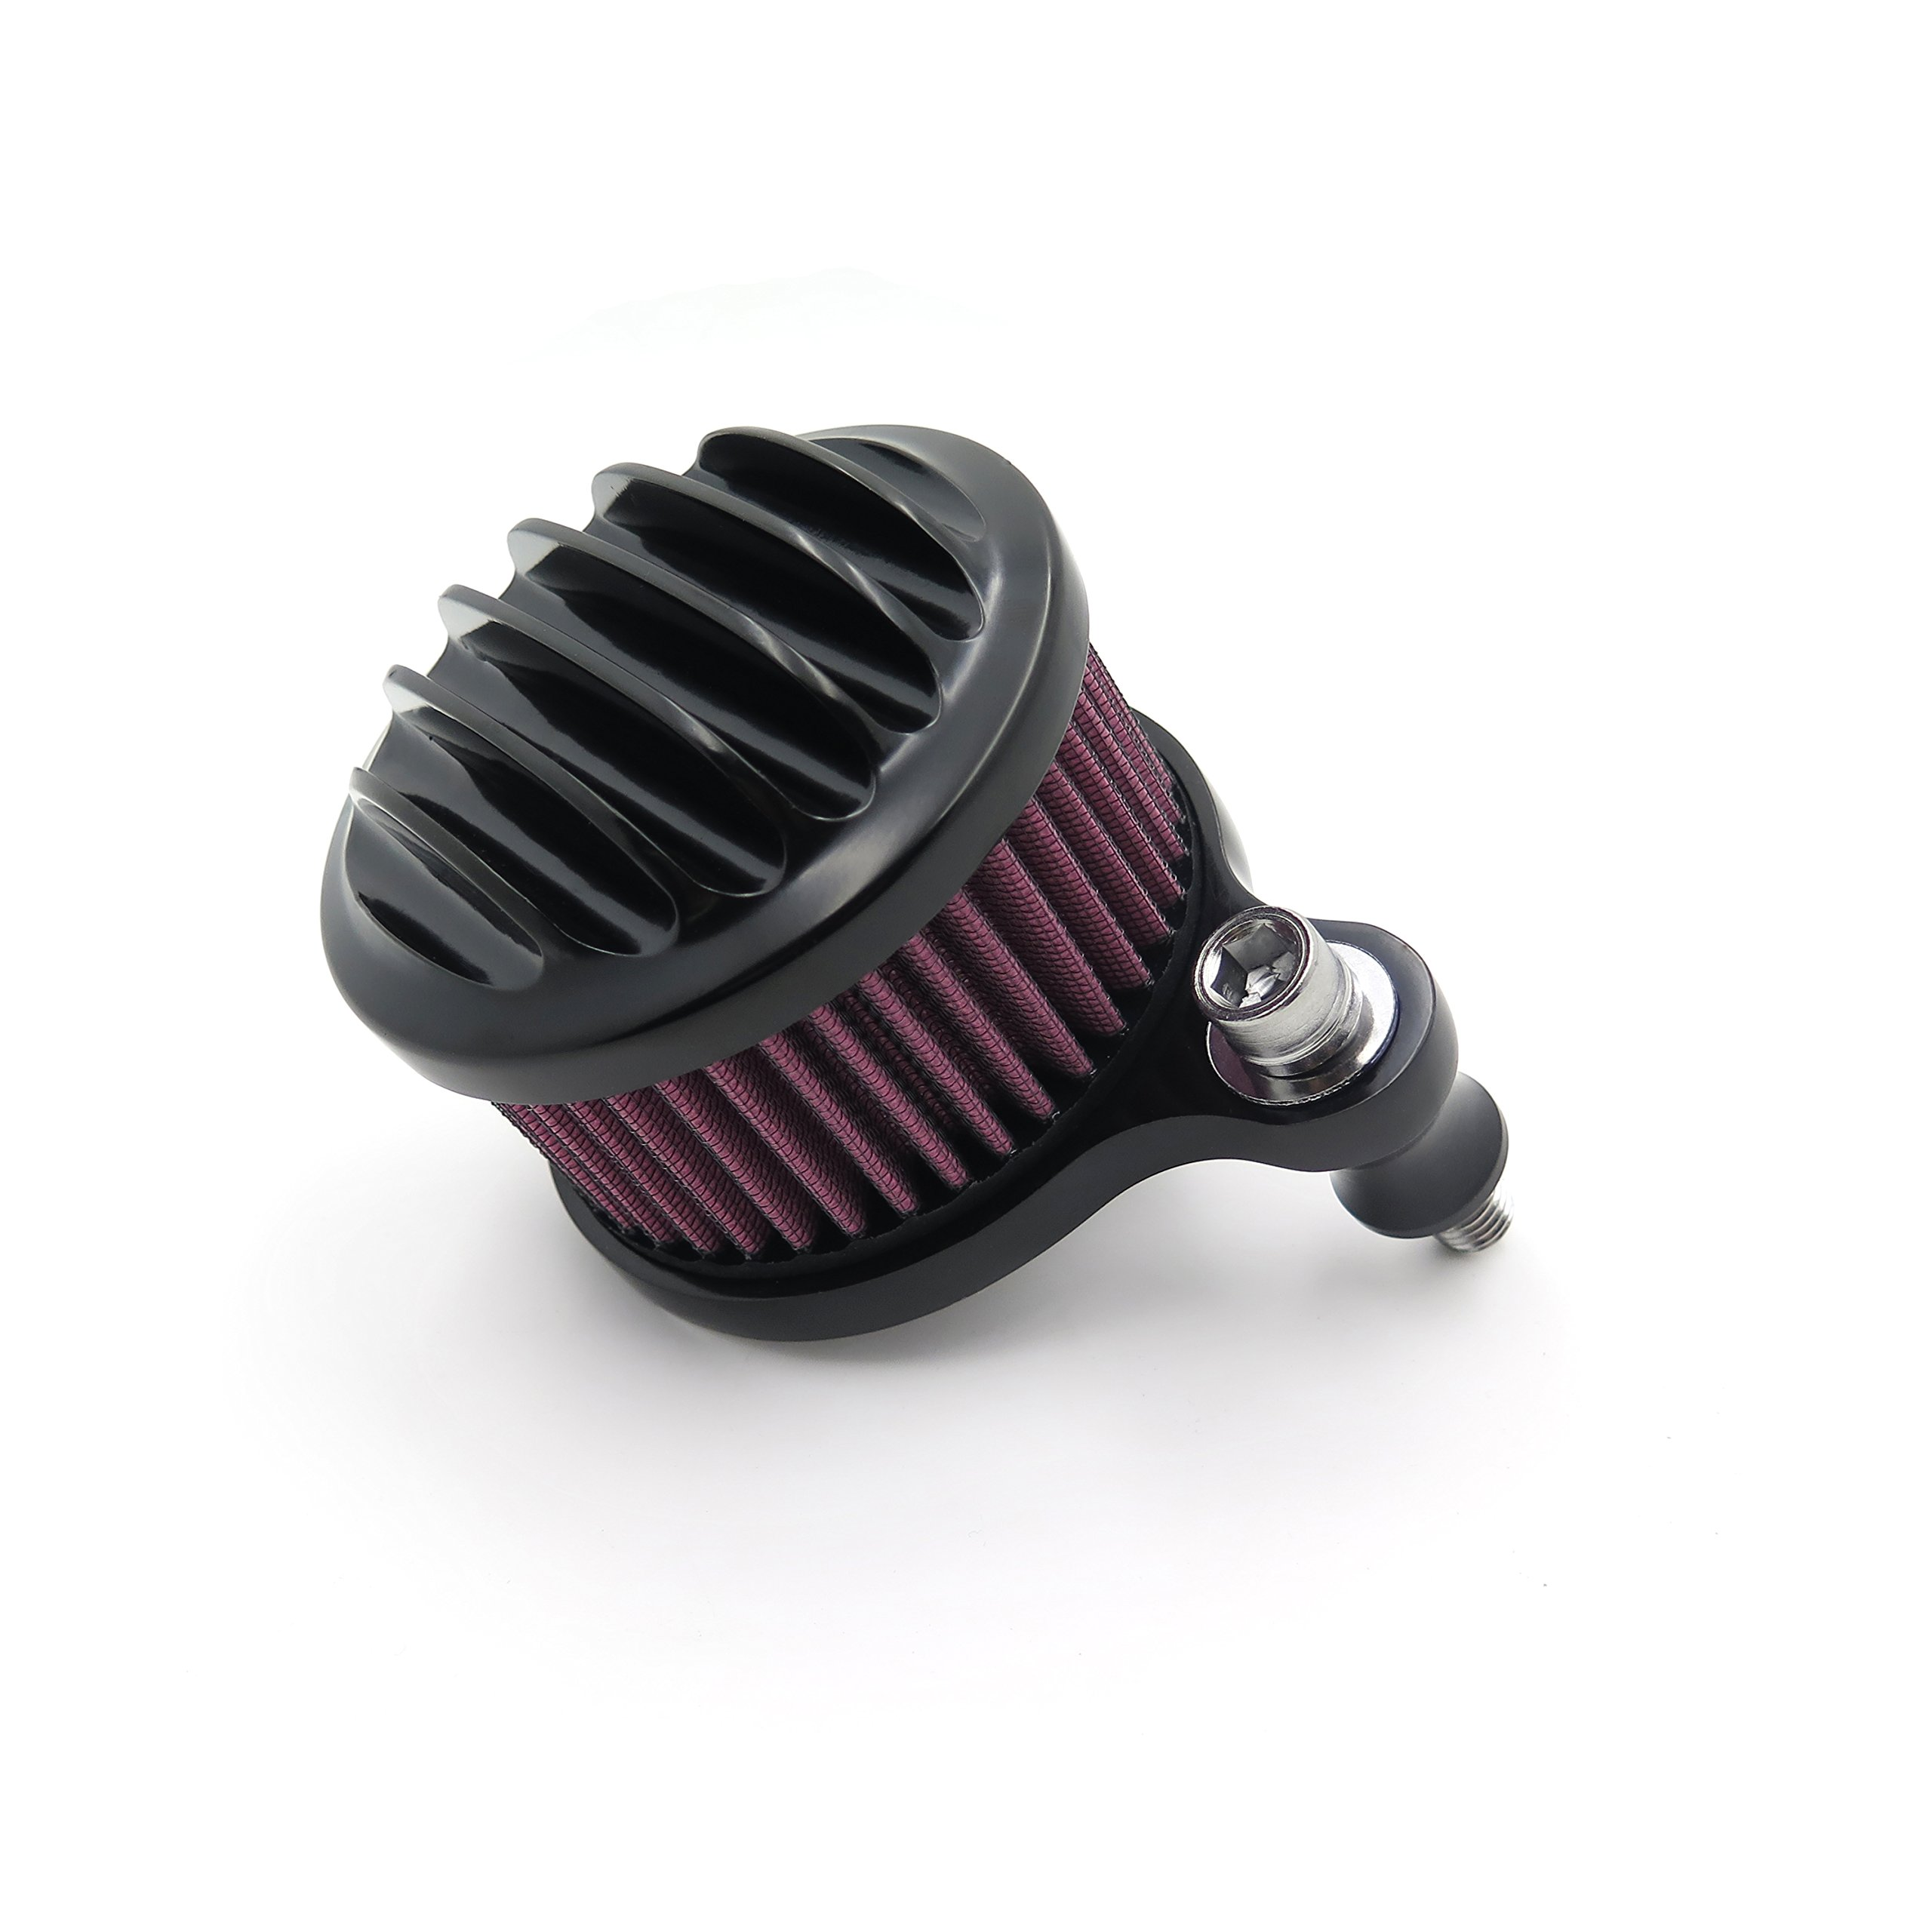 Air Cleaner Intake Filter System Kit For Harley Sportster XL883 XL1200 1988-2015 Black See description for detail by TTMT